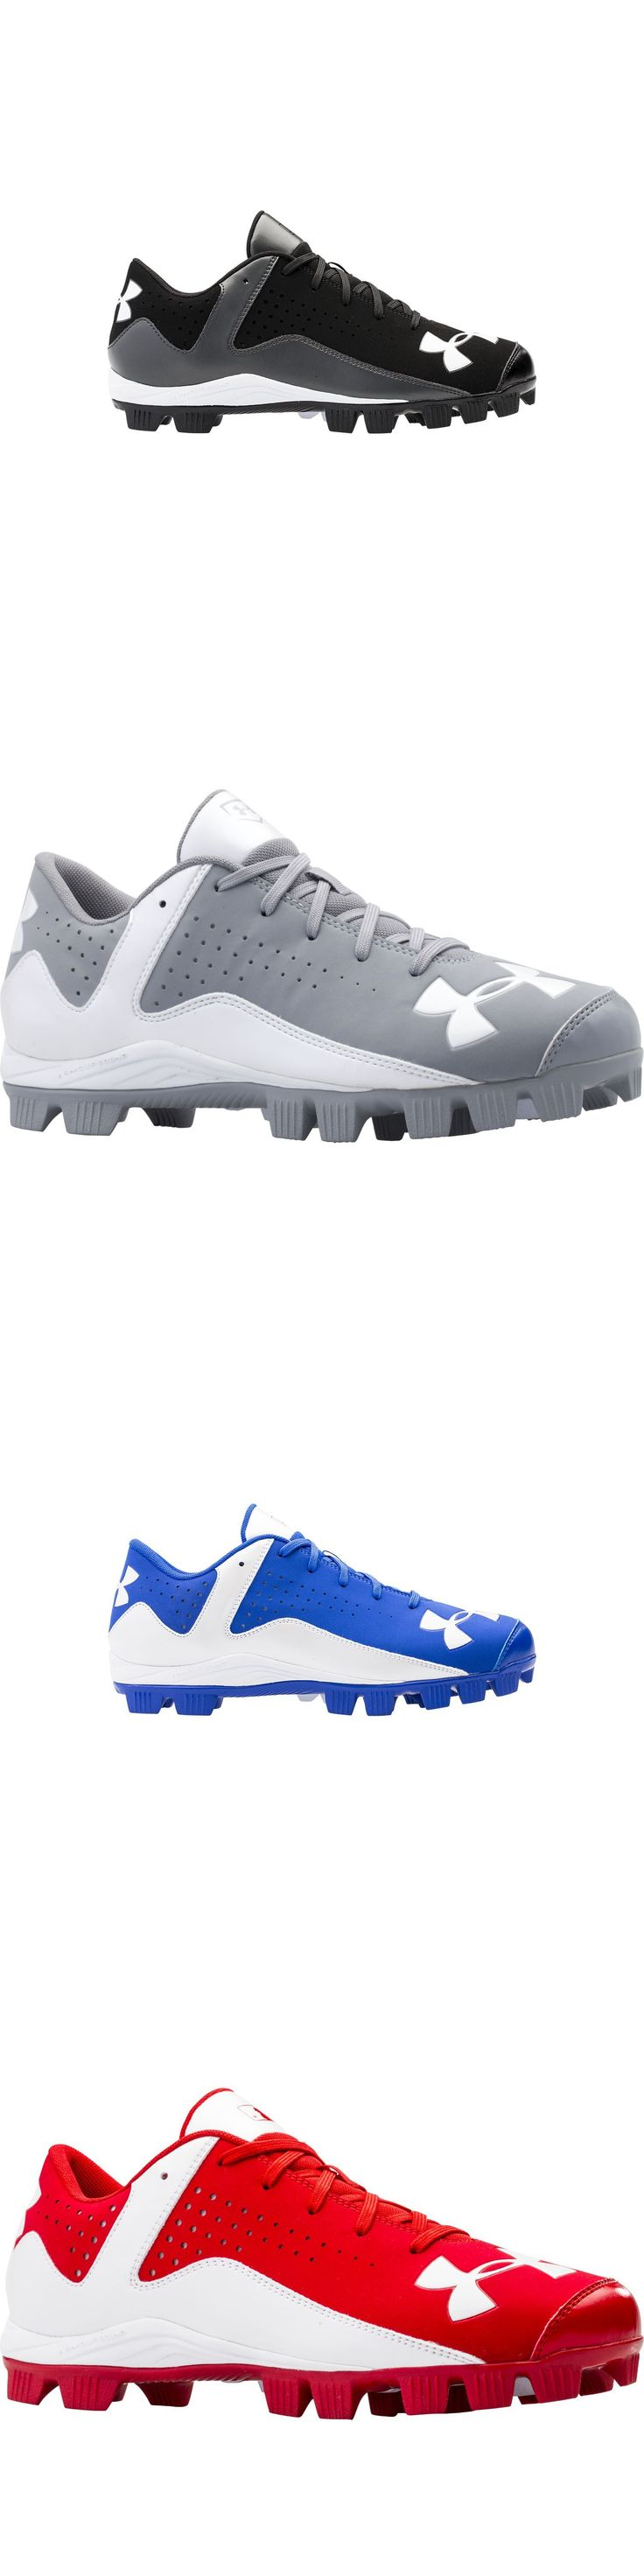 Mens 159059: New Under Armour Men S Leadoff Low Rm Baseball Cleats 1250077 -> BUY IT NOW ONLY: $44.99 on eBay!